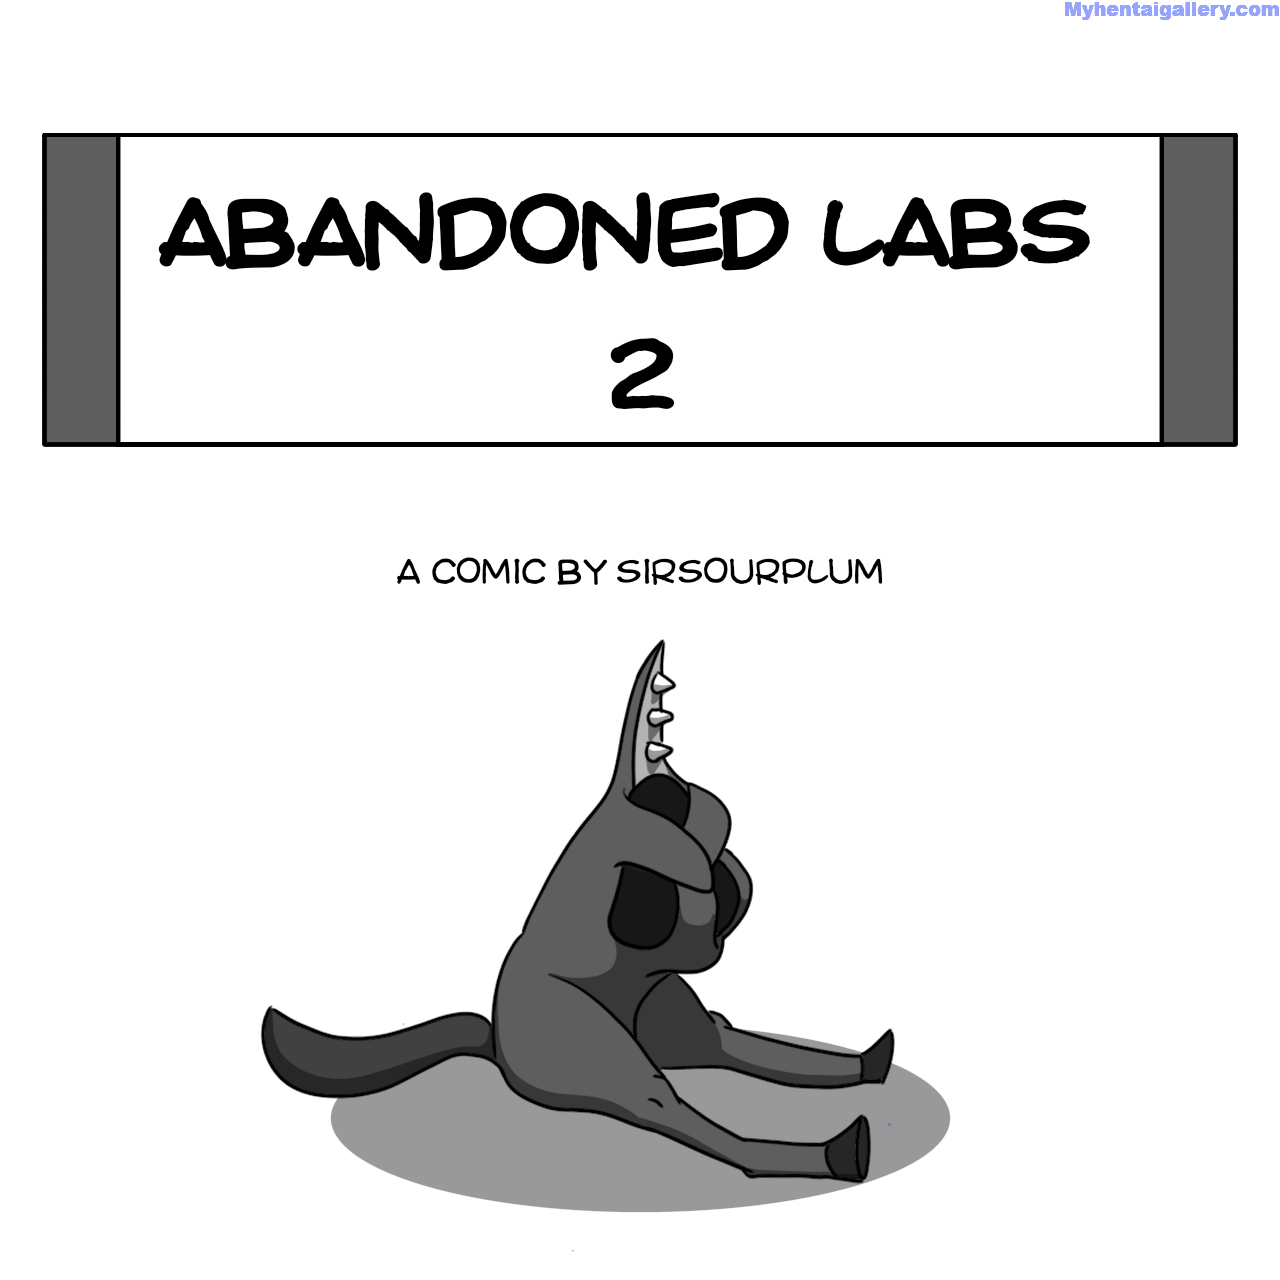 The Abandoned Labs 2